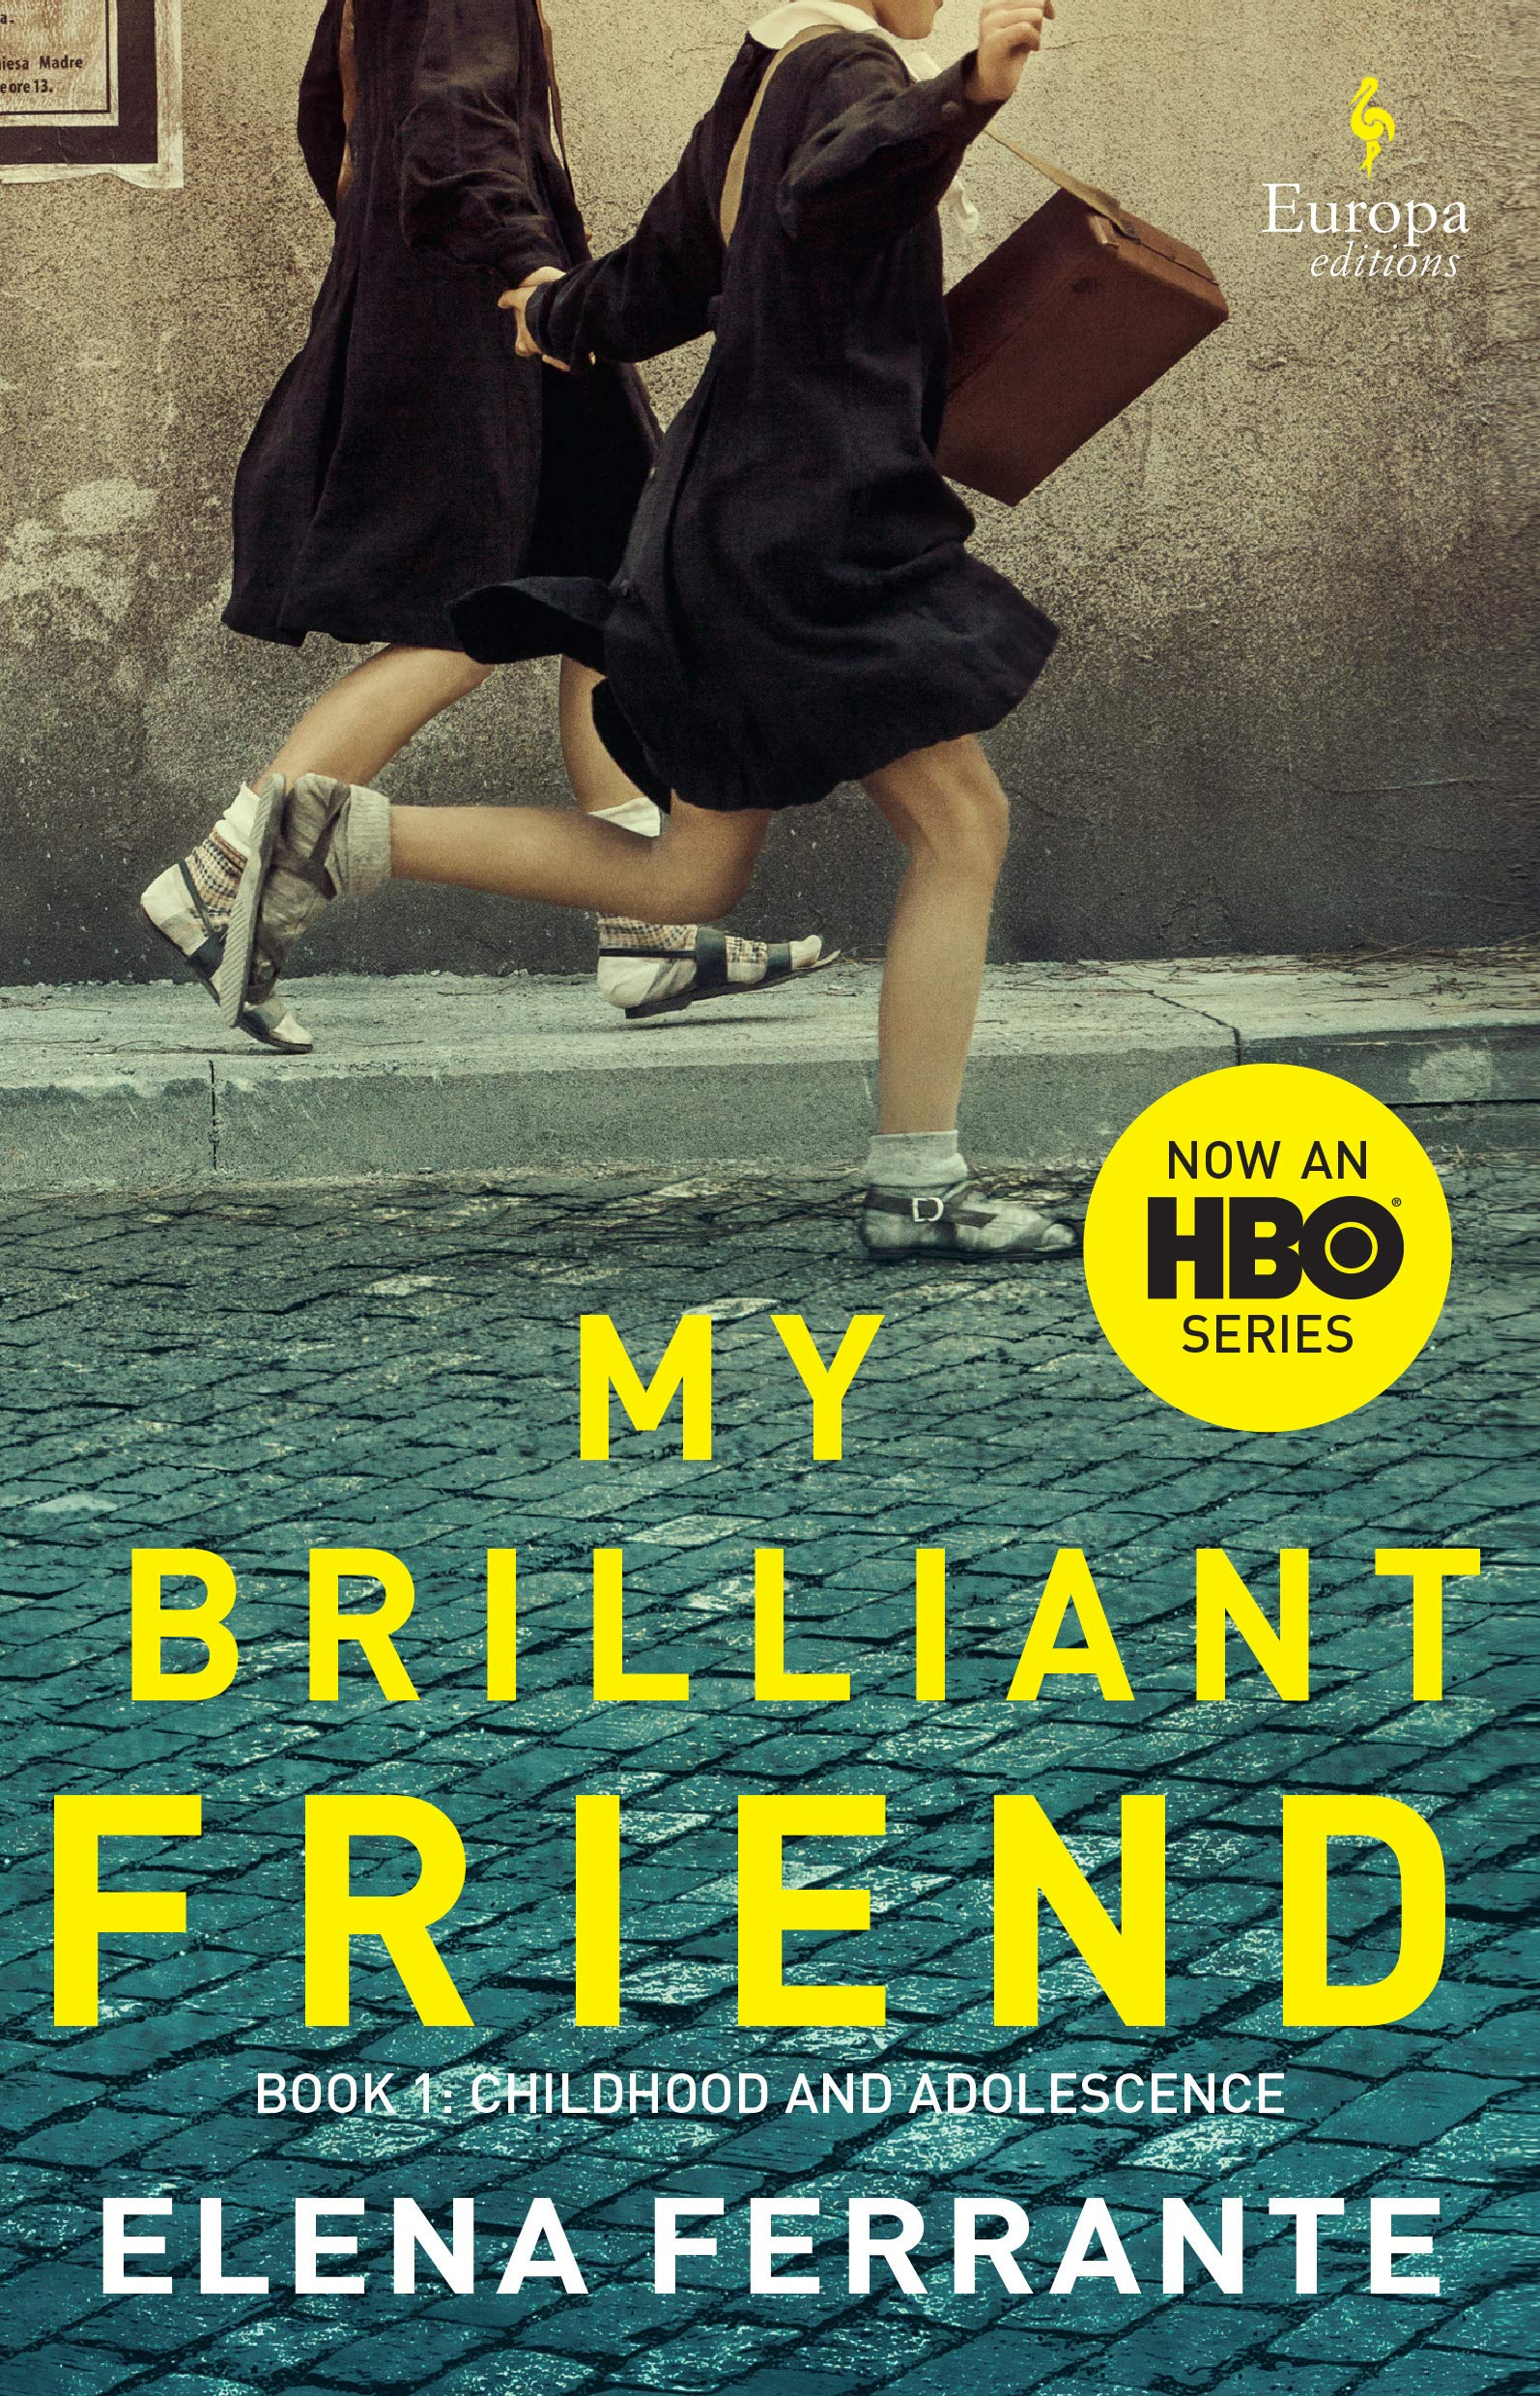 My Brilliant Friend - By Elena FerranteA modern masterpiece from one of Italy's most acclaimed authors, My Brilliant Friend is a rich, intense and generous hearted story about two friends, Elena and Lila. Ferrante's inimitable style lends itself perfectly to a meticulous portrait of these two women that is also the story of a nation and a touching meditation on the nature of friendship. Through the lives of these two women, Ferrante tells the story of a neighborhood, a city and a country as it is transformed in ways that, in turn, also transform the relationship between her two protagonists. Buy on Amazon